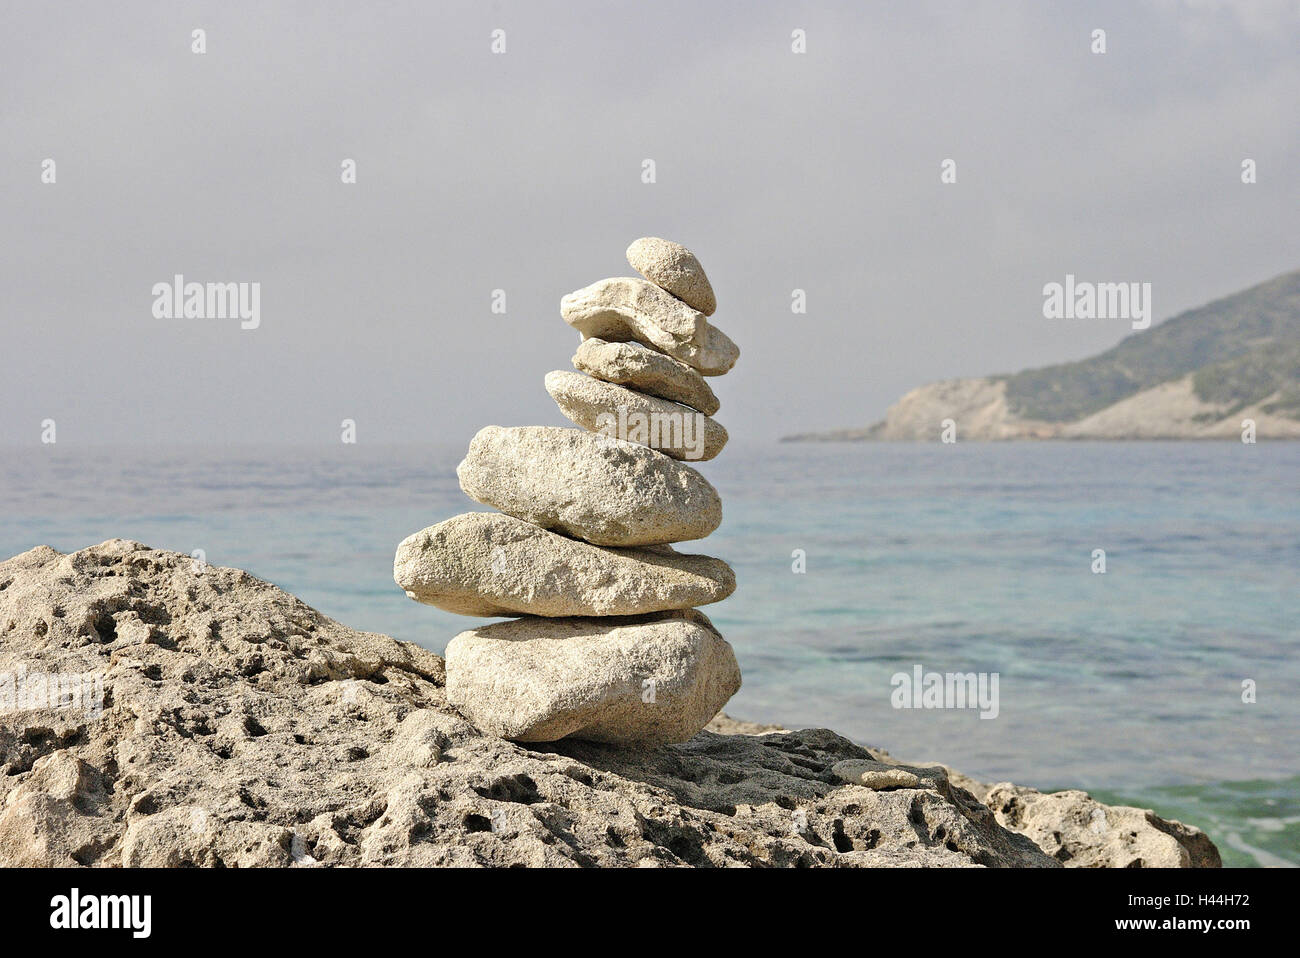 Bile coast, detail, stones, on each other, - Stock Image